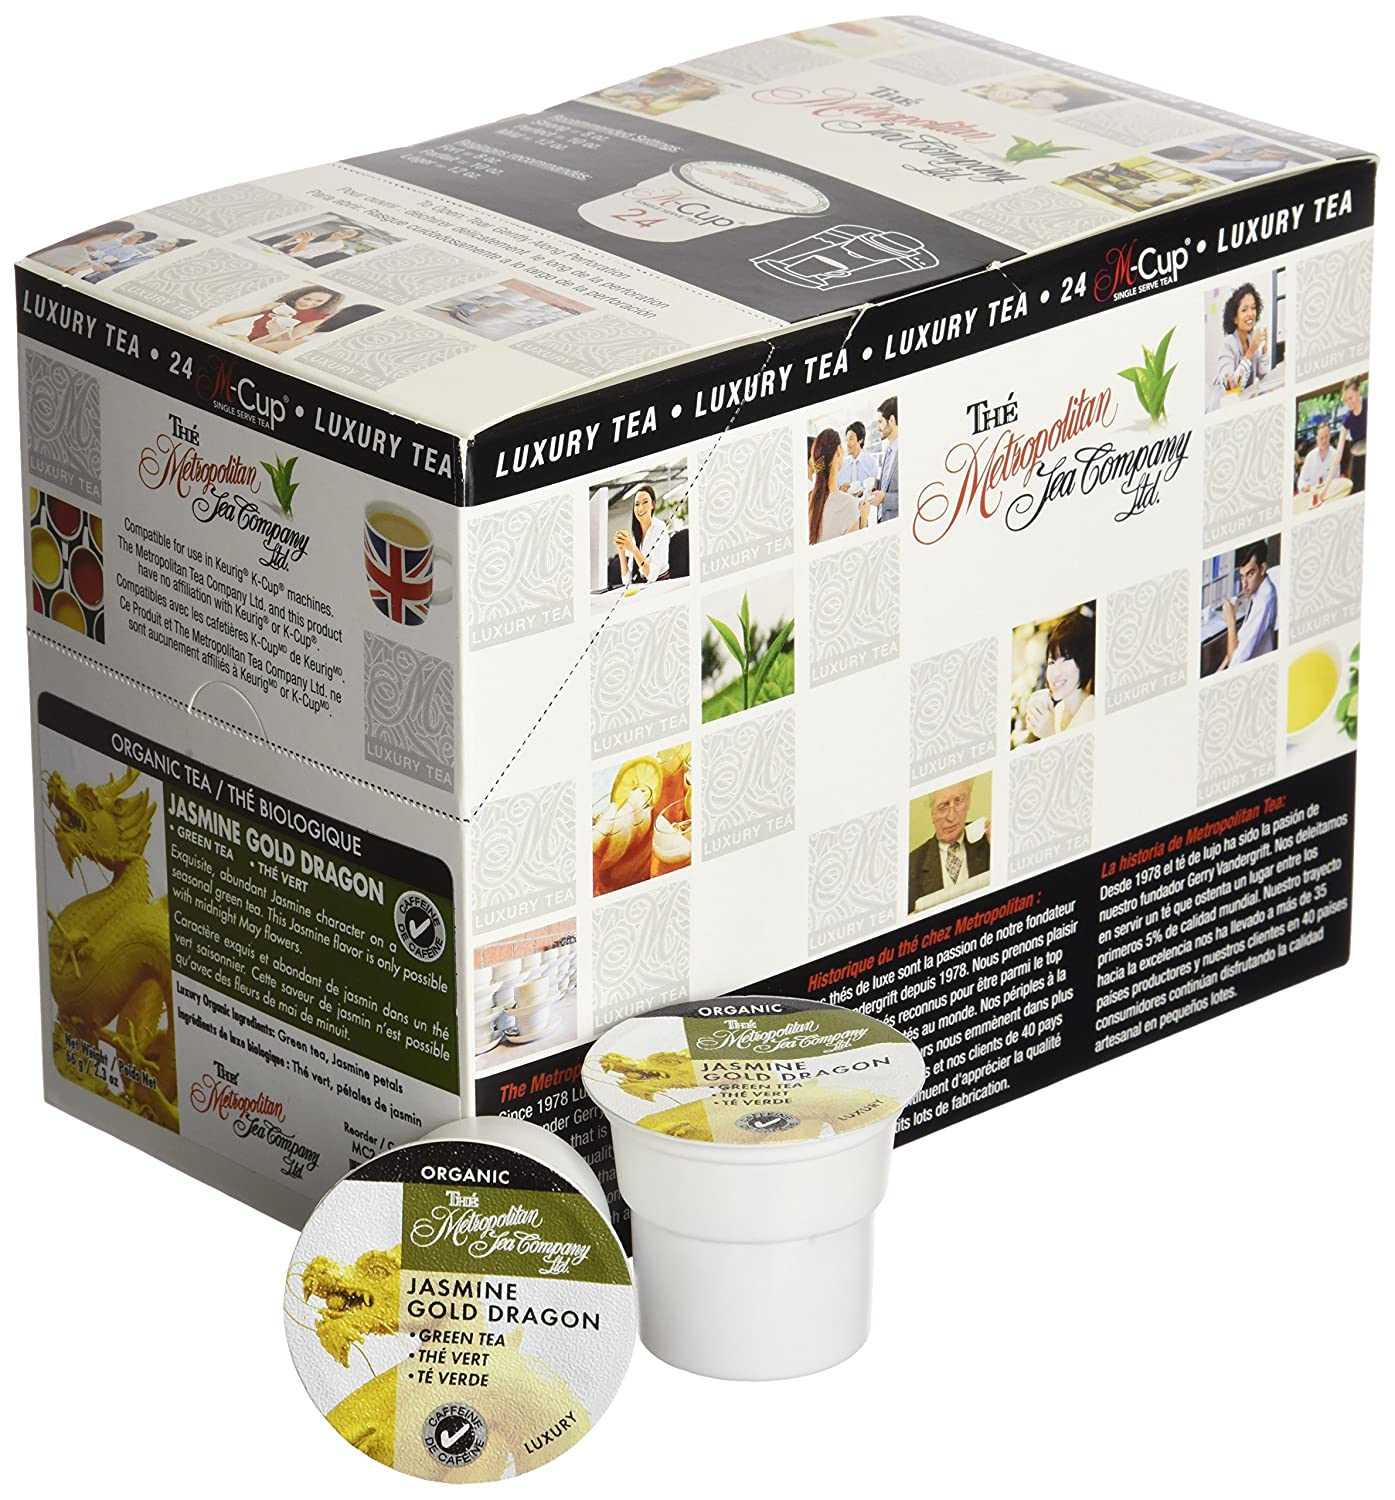 Amazon.com : Metropolitan Organic Jasmine Gold Dragon Tea M Cup - 24 count : Grocery & Gourmet Food